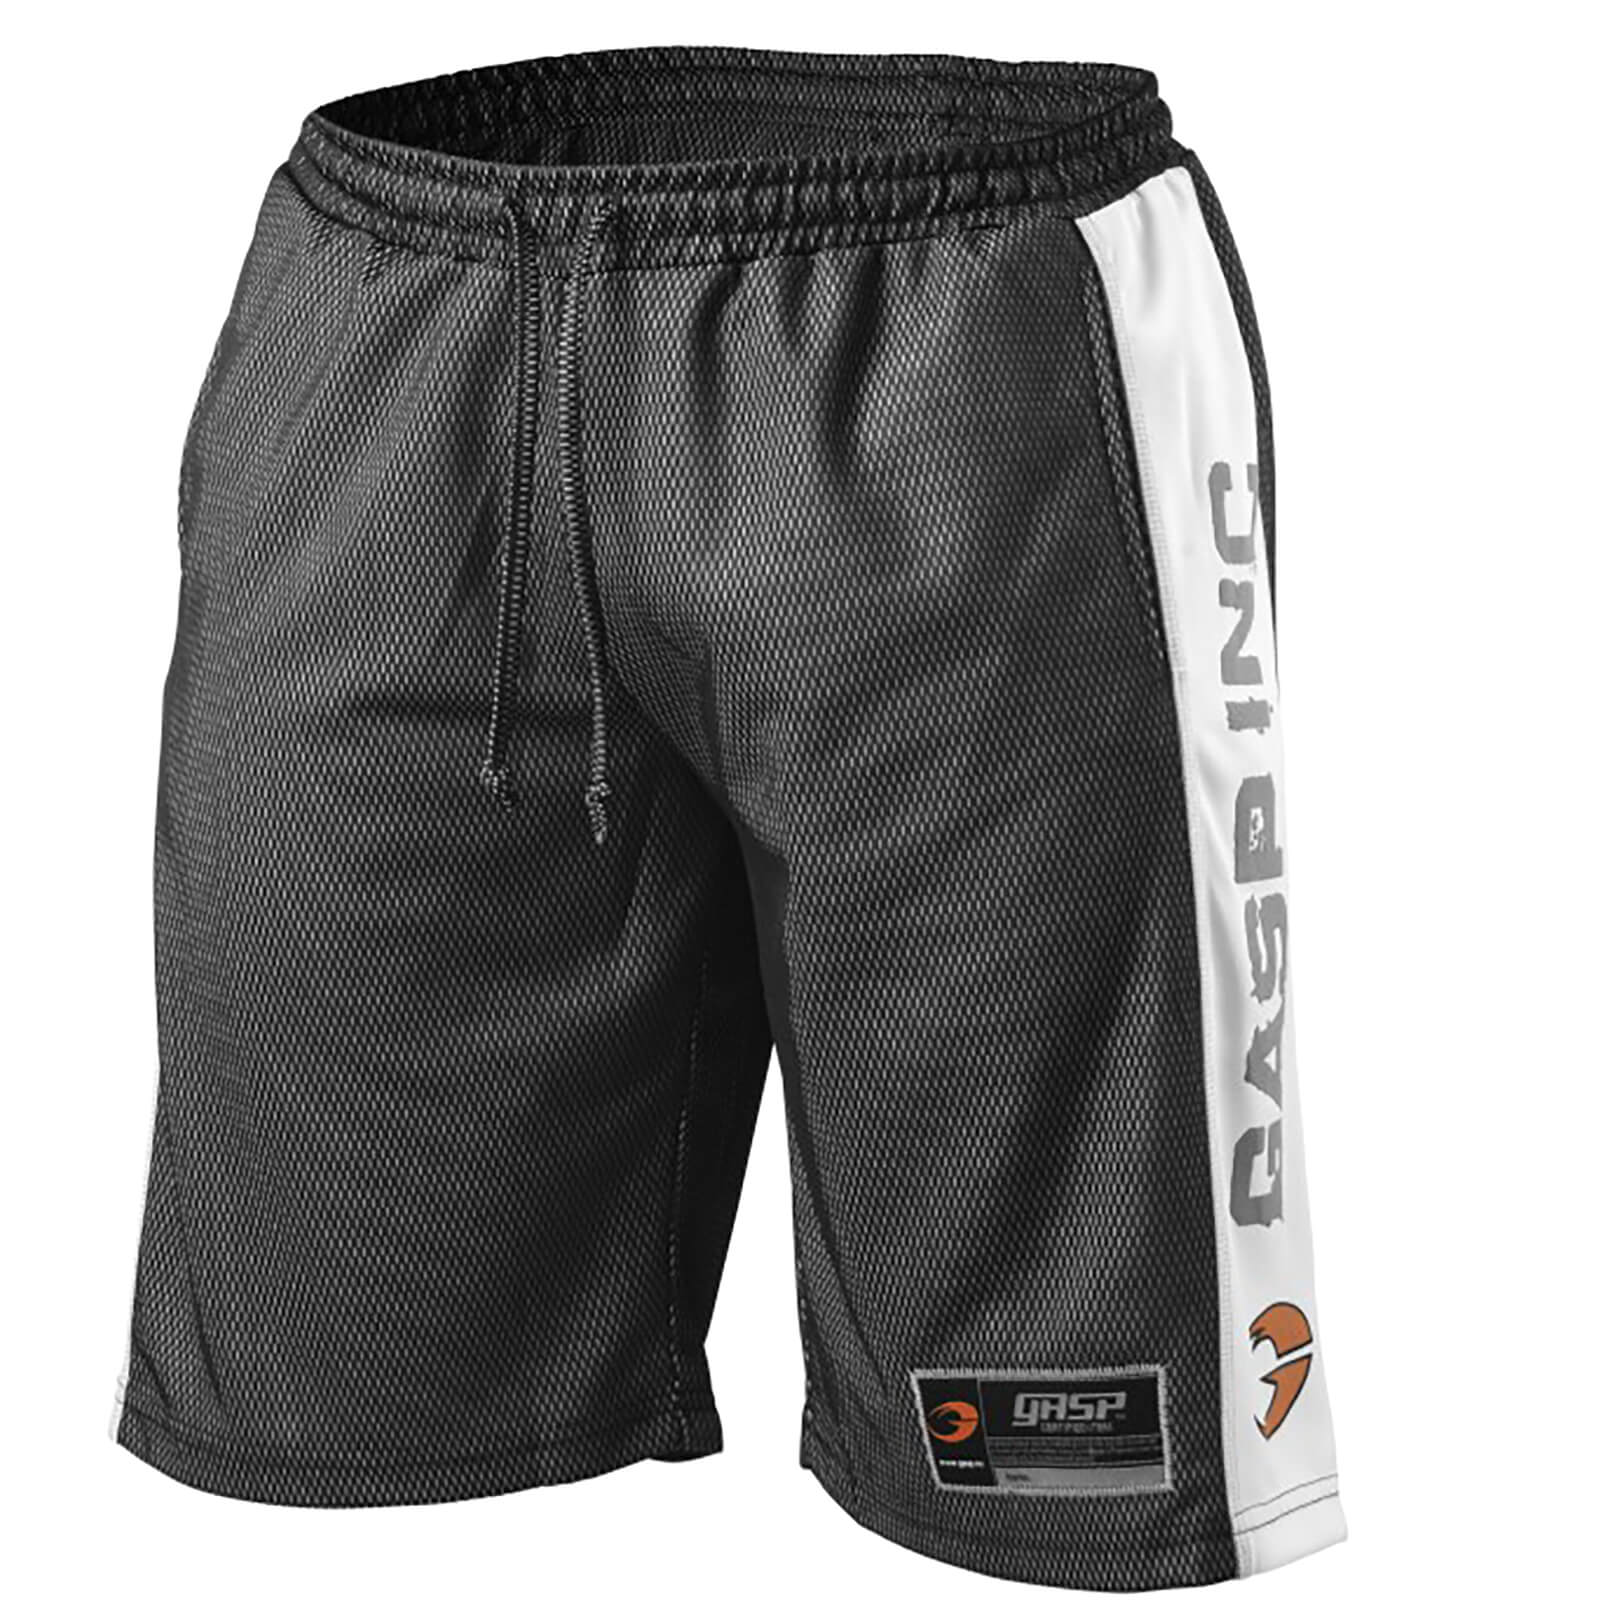 GASP No1 Mesh Shorts - Black/White - XL